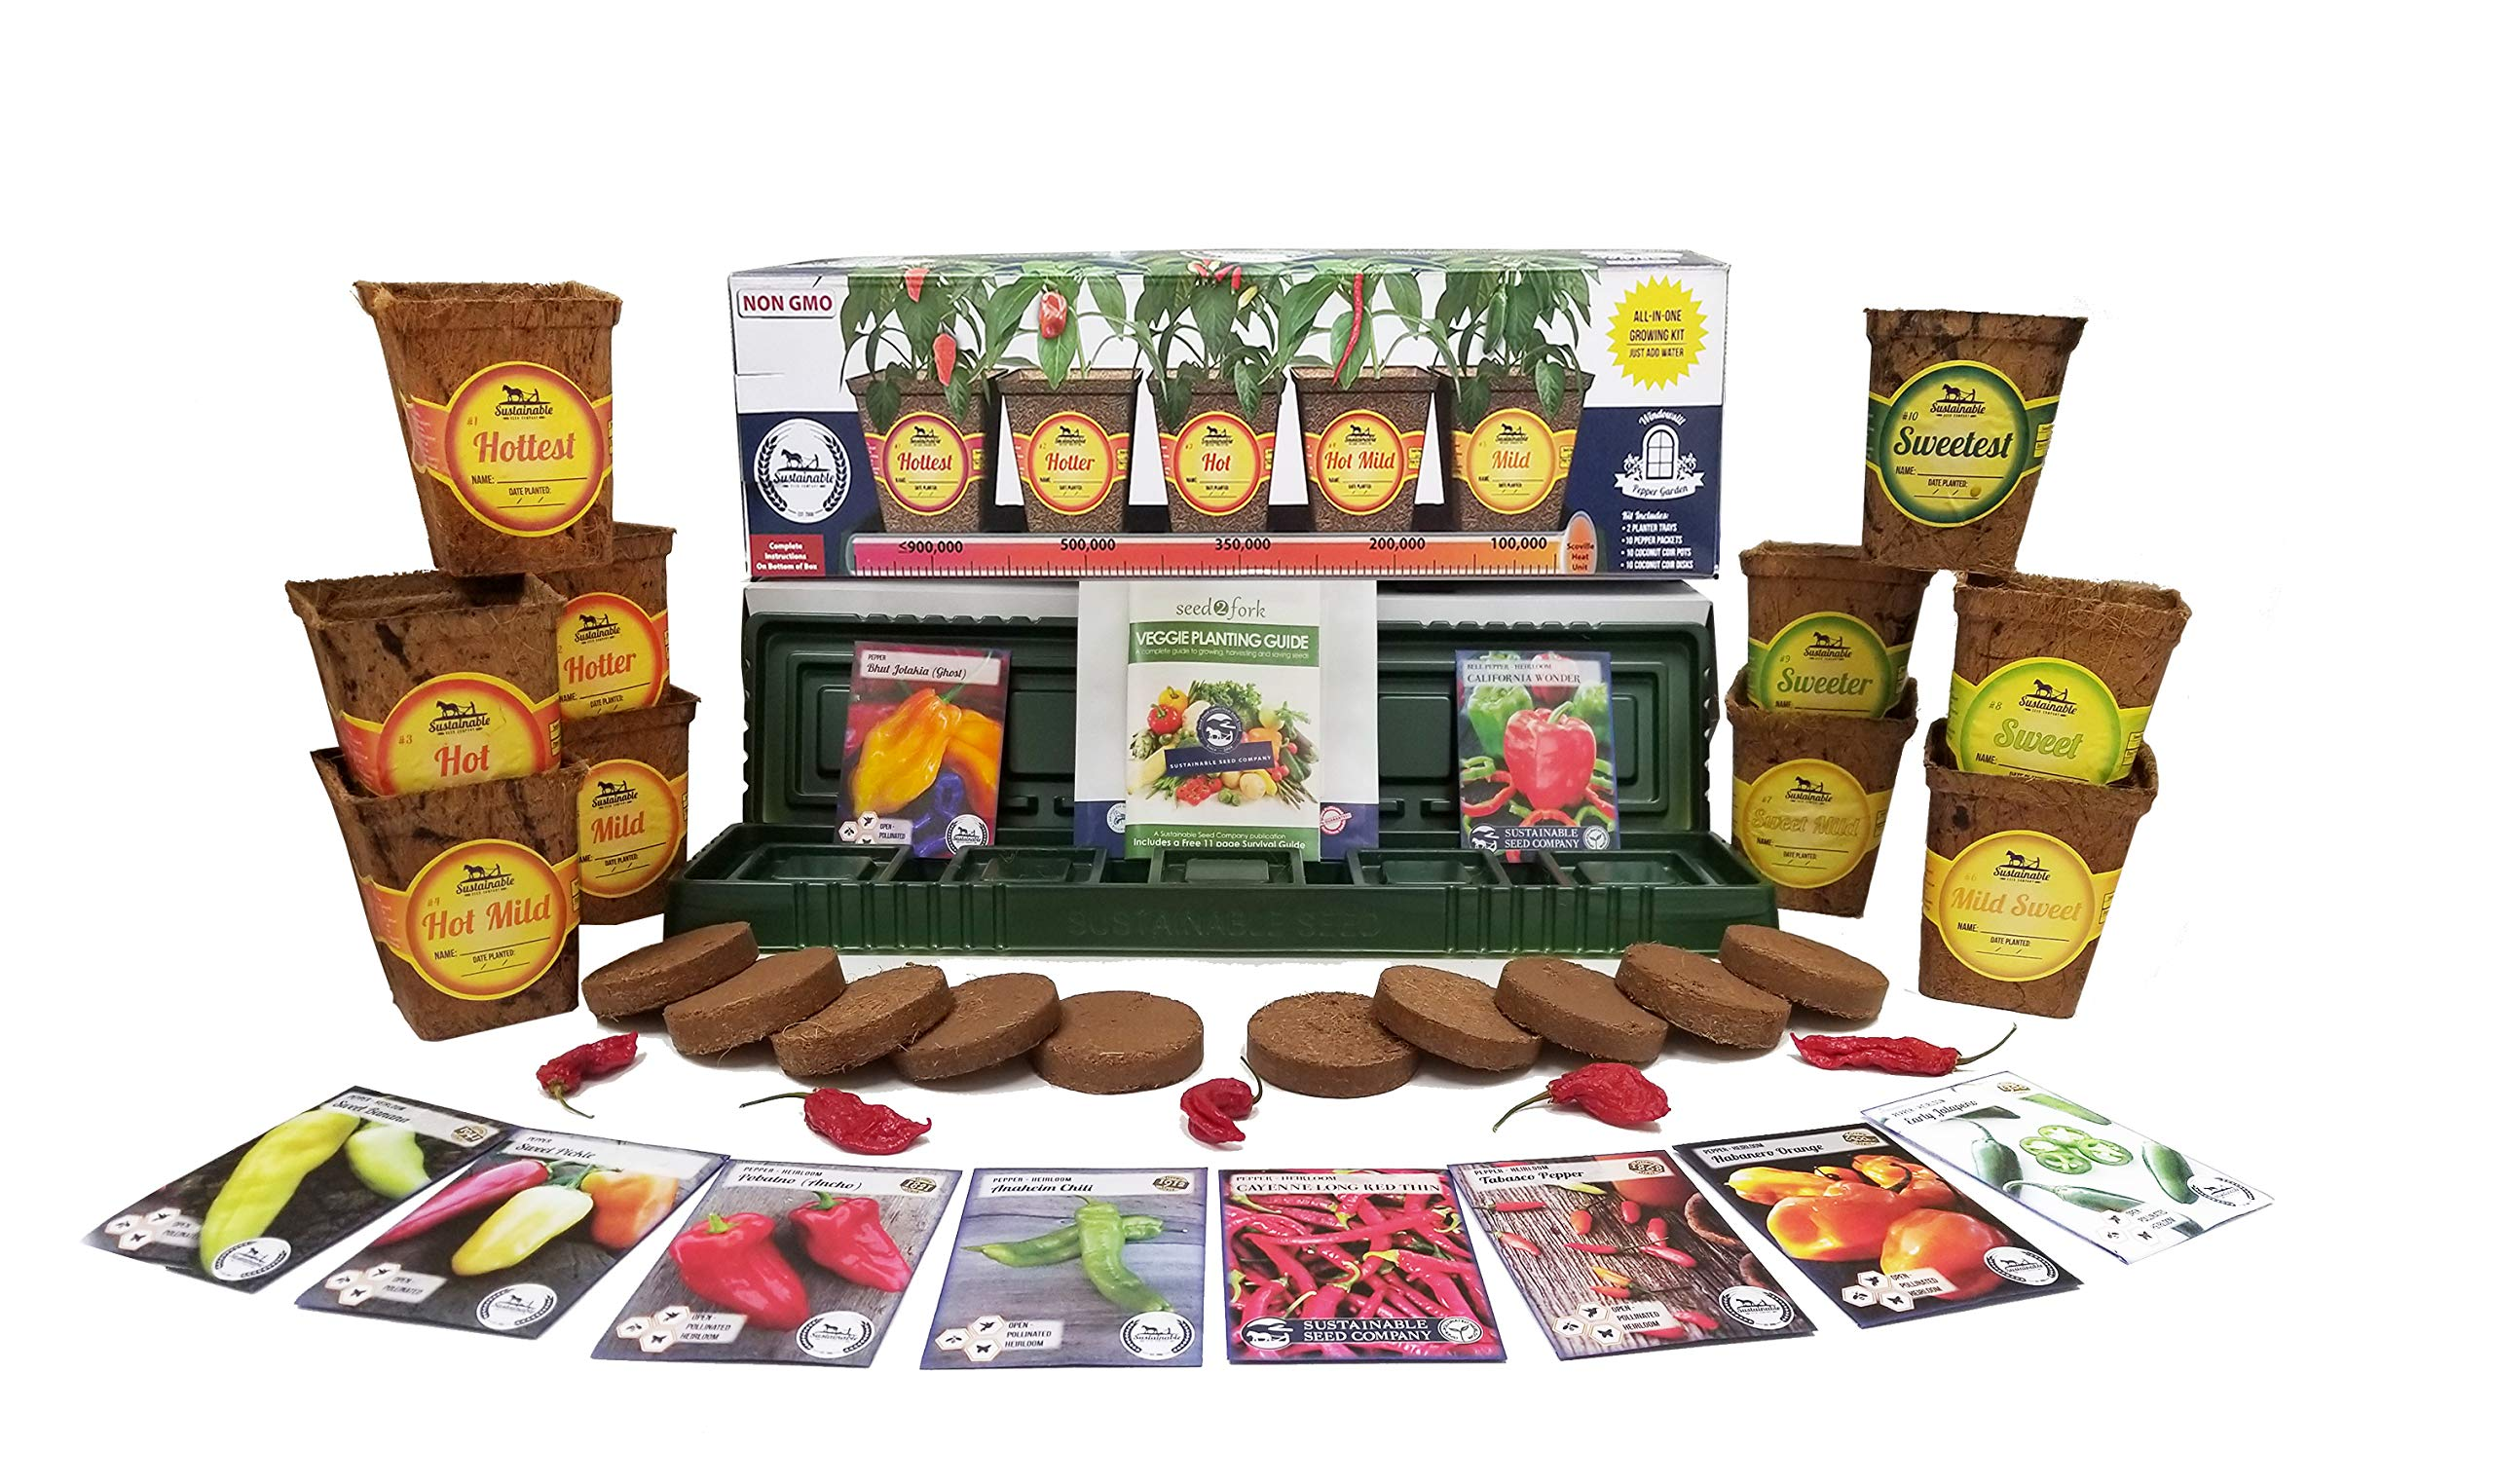 Windowsill Pepper Garden Kit, Pepper Planter Comes Complete with a 10 Variety Non GMO Heirloom Pepper Seed Collection & Pepper Pots by Sustainable Seed Company (Image #1)